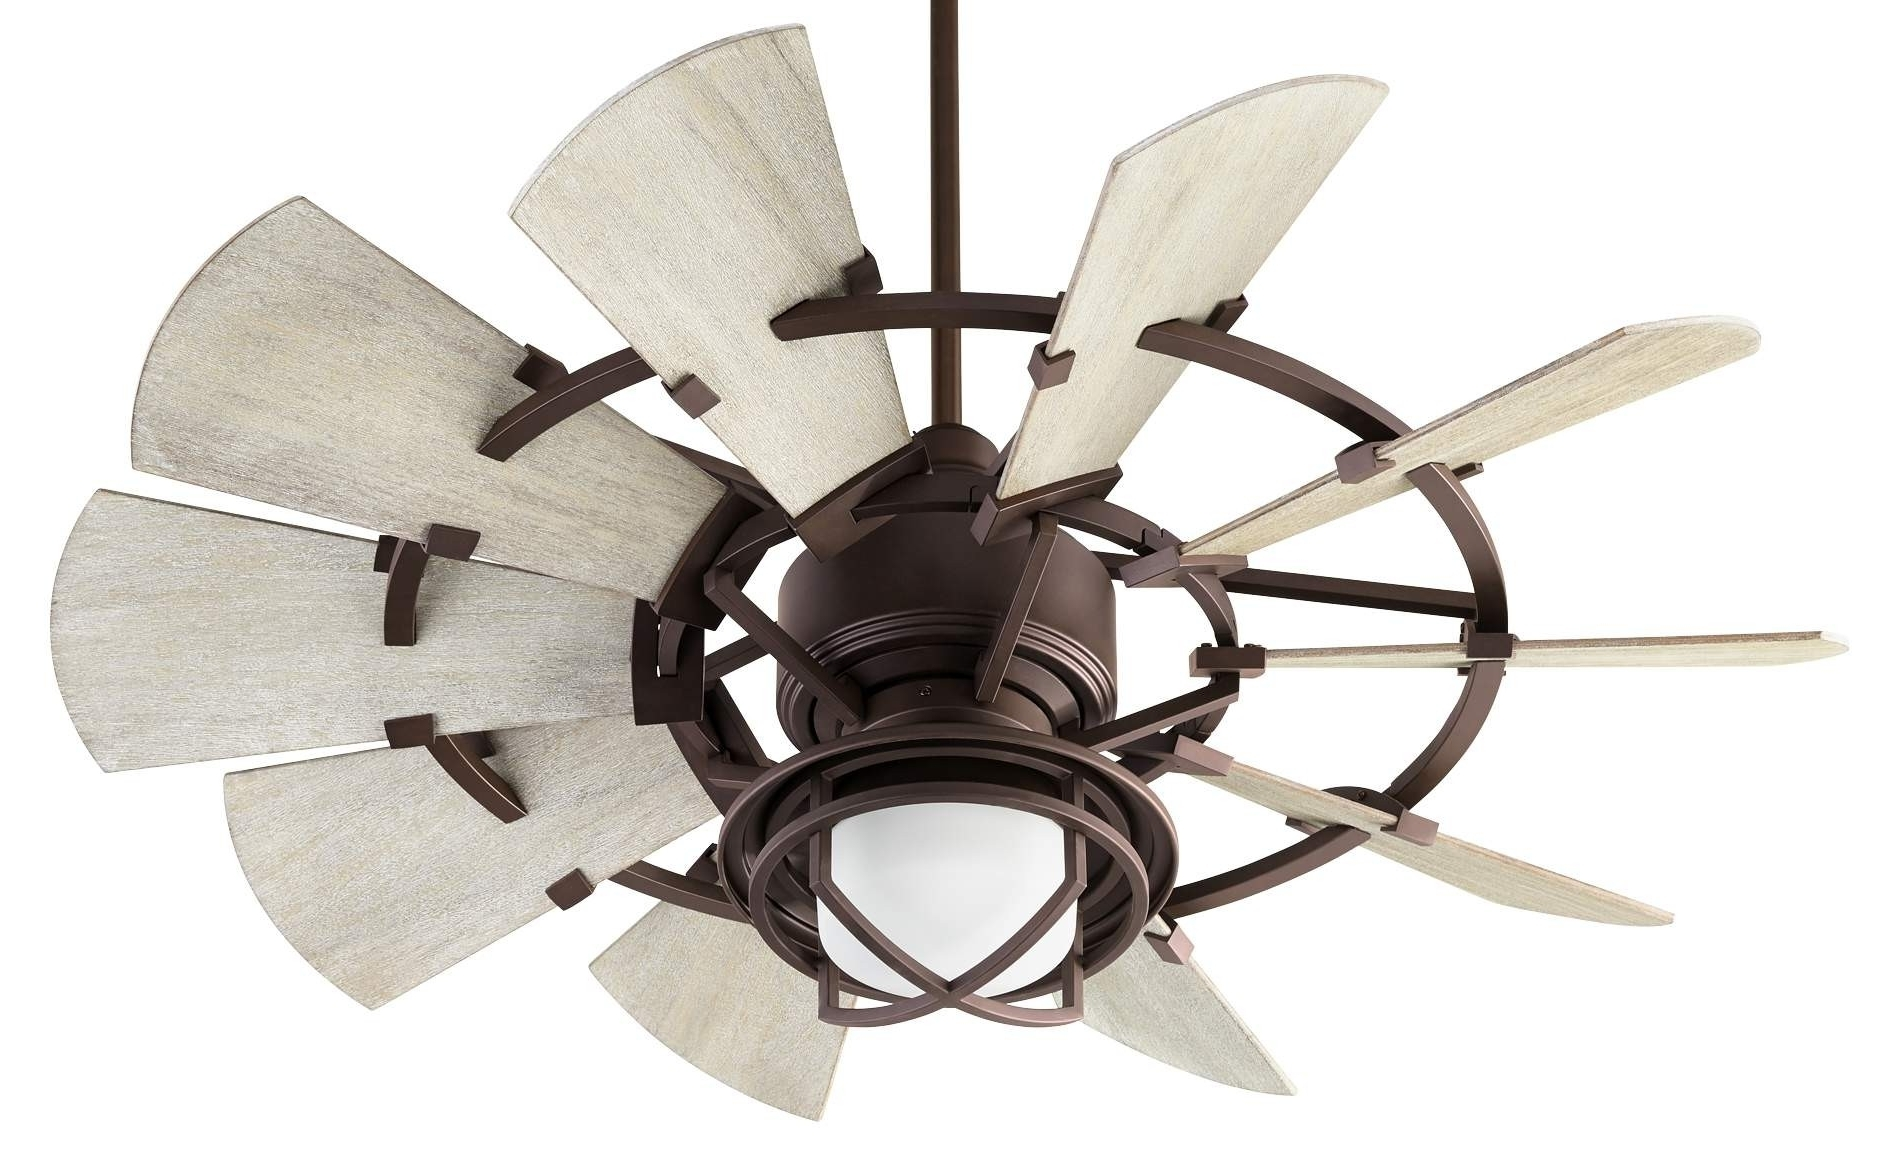 Outdoor Windmill Ceiling Fans With Light For Favorite Quorum Windmill Ceiling Fan Model 194410 86 In Oiled Bronze (View 11 of 20)